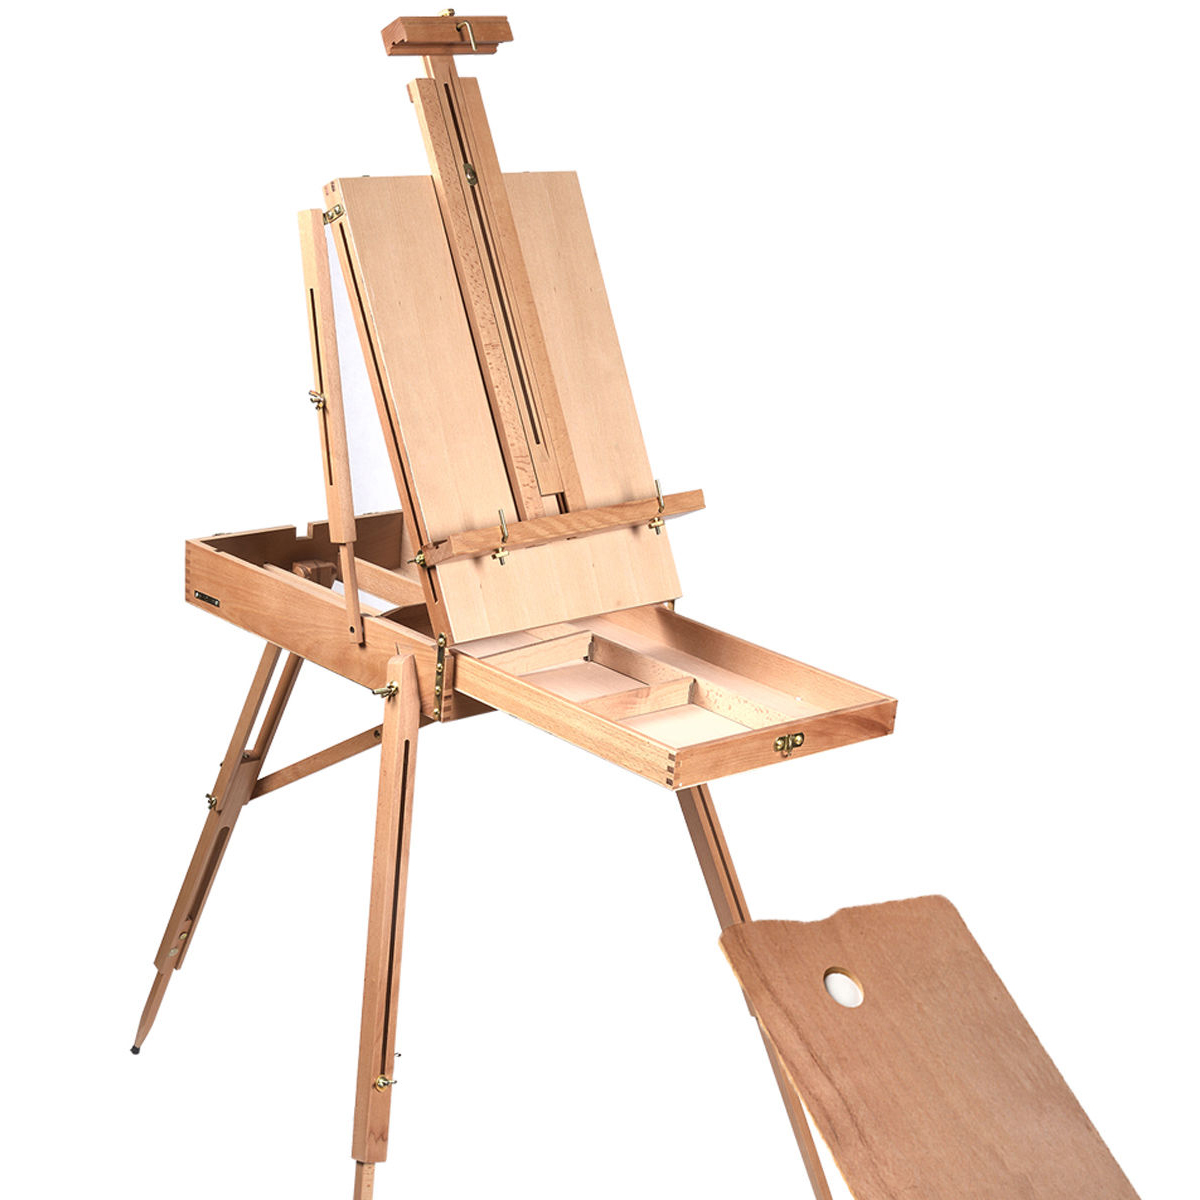 Professional Folding Art Wood Wooden Easel Paint Sketch Drawing Box Tripod Stand for Oil Painting Sketching